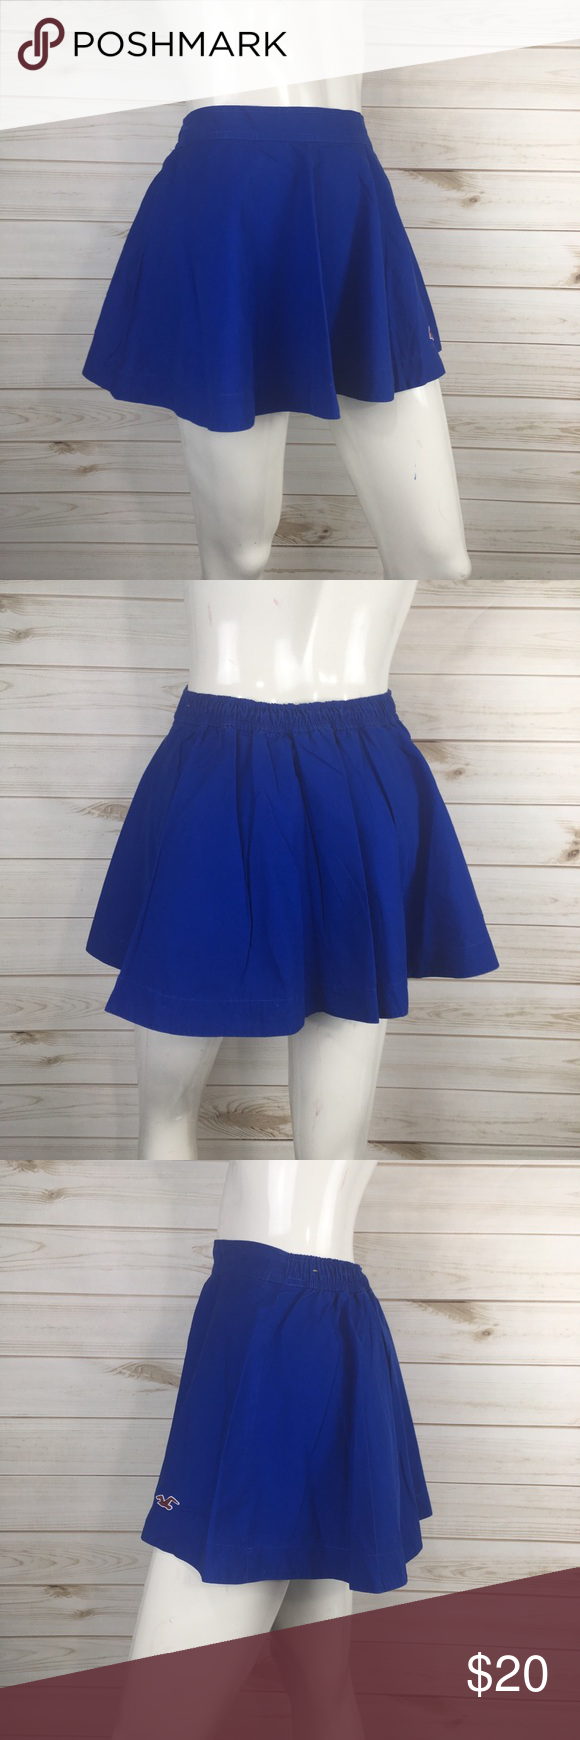 Hollister Blue Skater Circle Skirt Royal blue  Excellent condition   Size small Hollister Skirts Circle & Skater